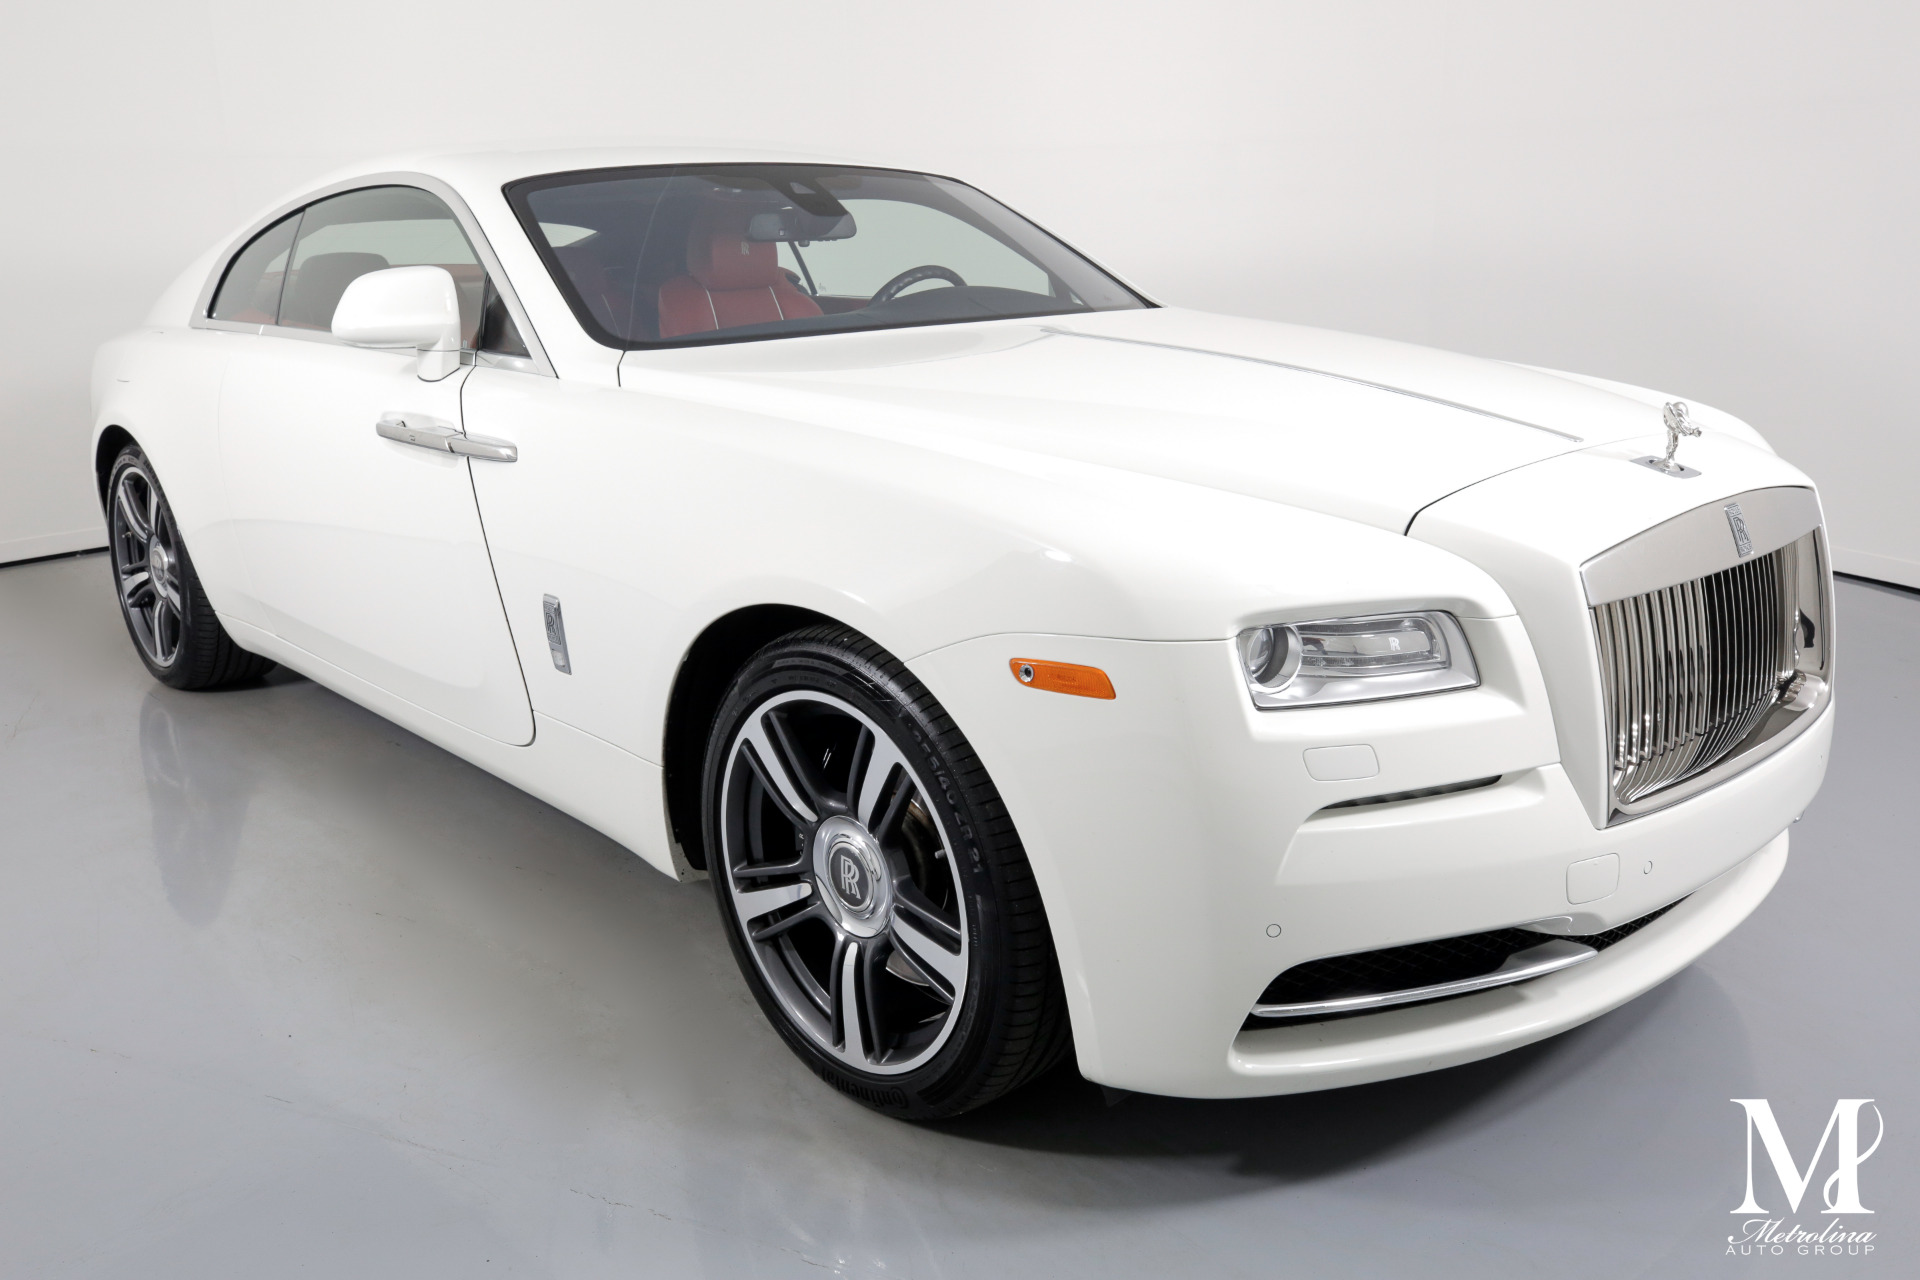 Used 2016 Rolls-Royce Wraith for sale $179,996 at Metrolina Auto Group in Charlotte NC 28217 - 2